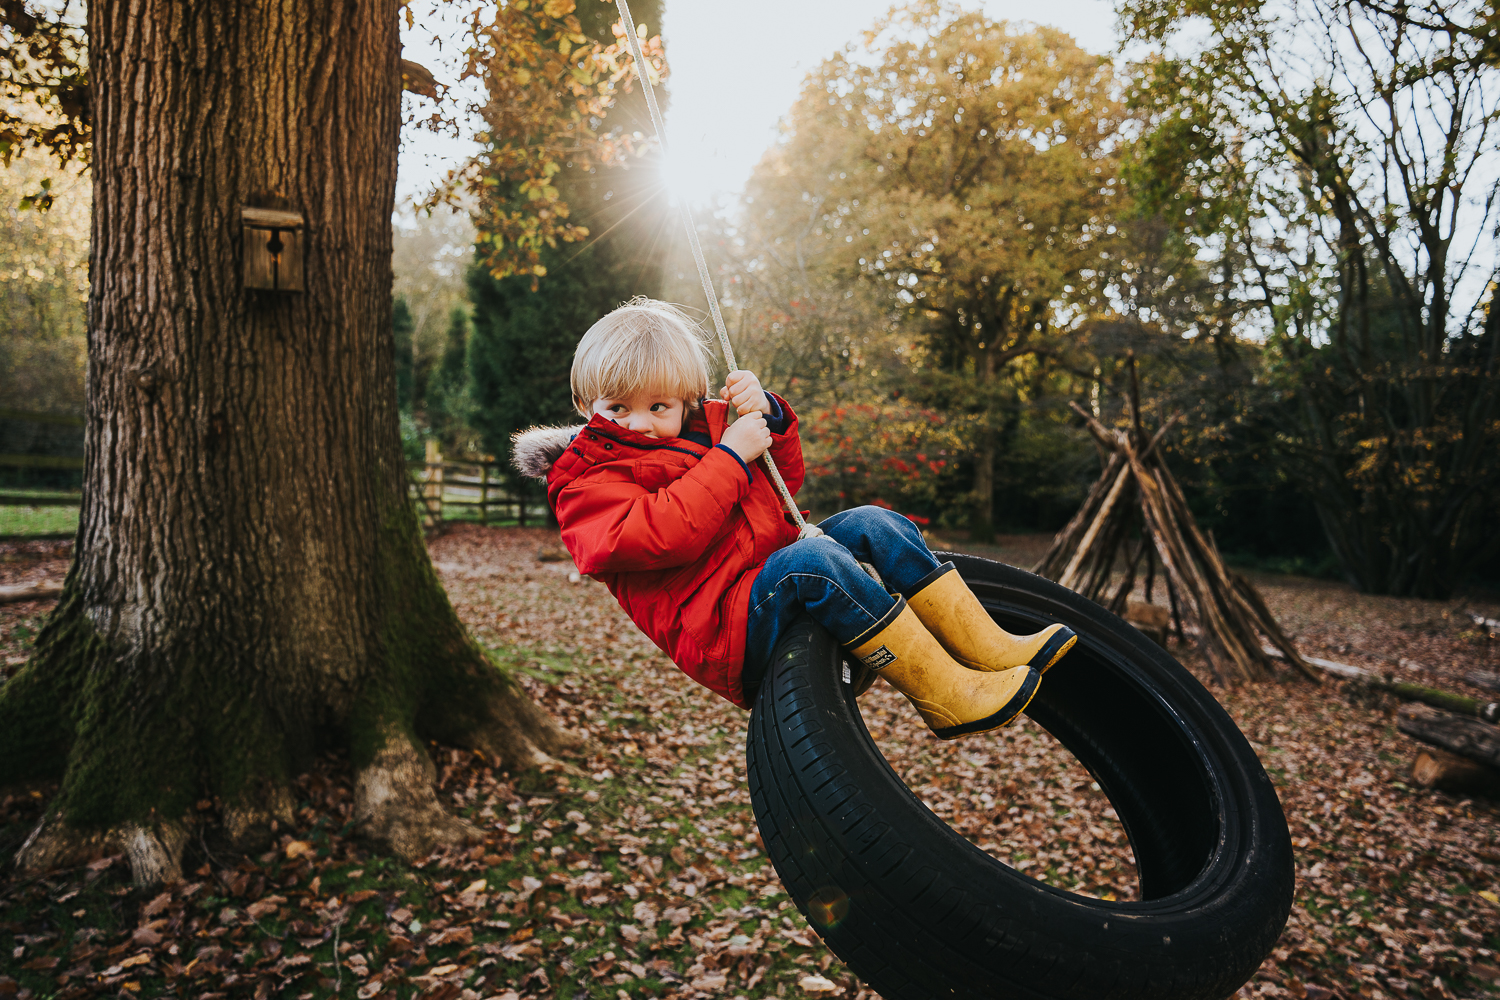 London family photography 2020 young boy swinging on tyre swing in autumn sunshine